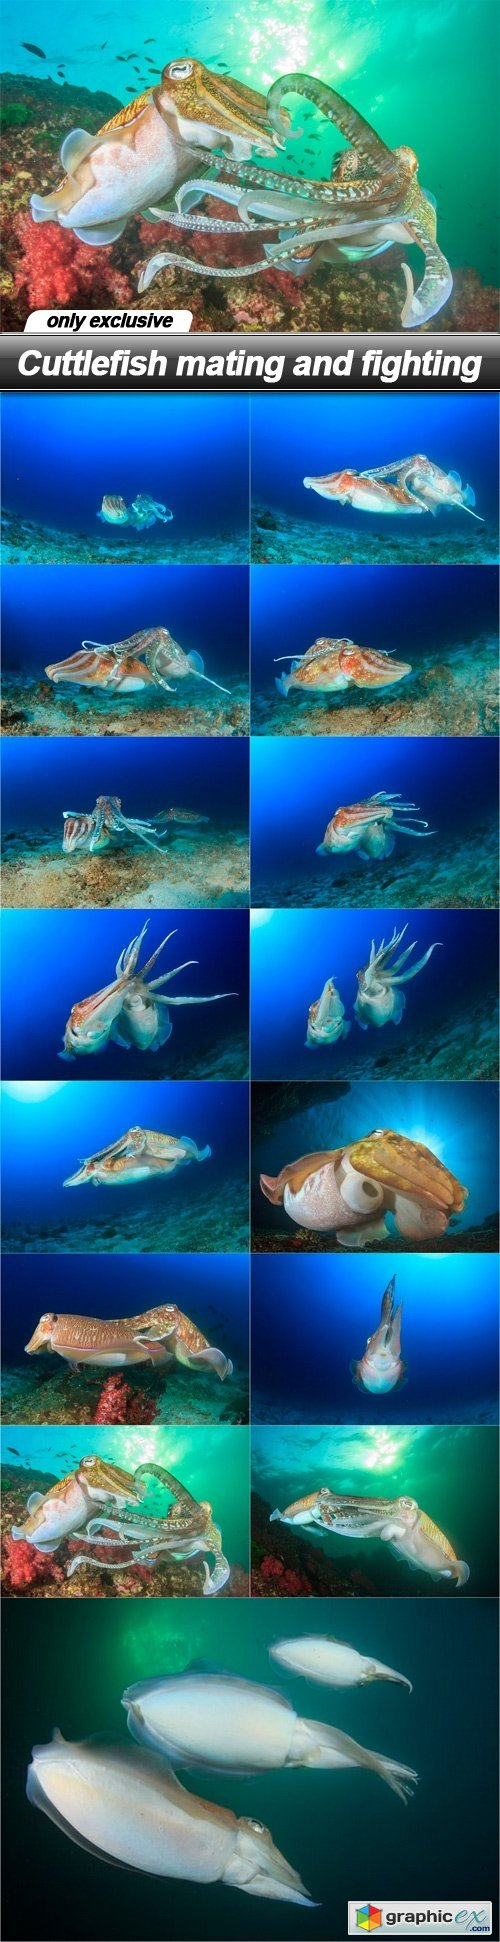 Cuttlefish mating and fighting - 15 UHQ JPEG